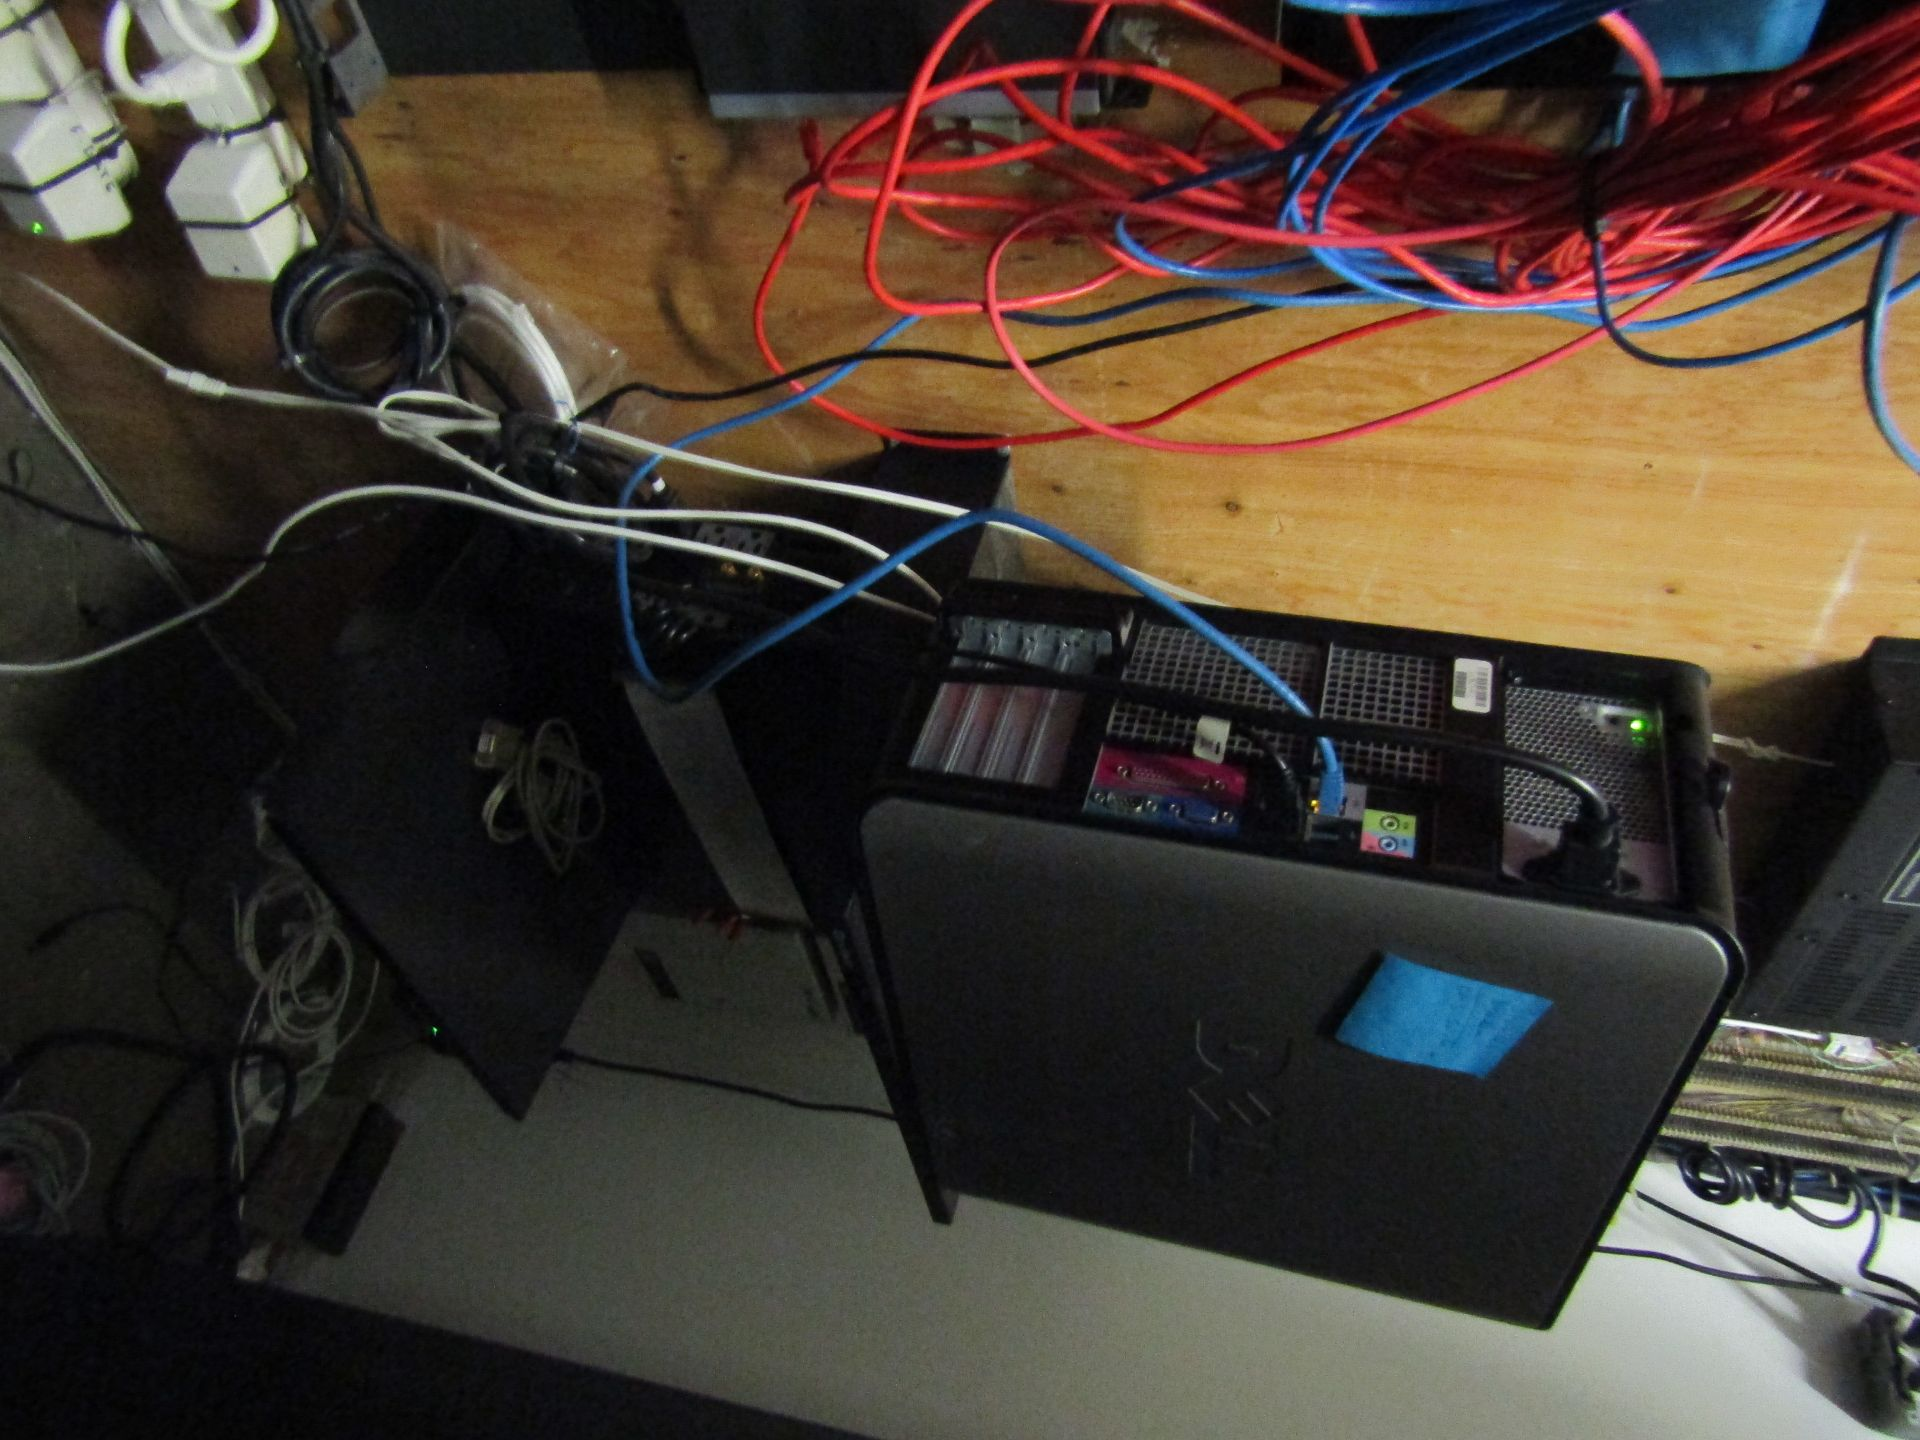 Lot 38 - Contents of Server Room to Include But Not Limited to (No Alarm or Structural Items): Electrical